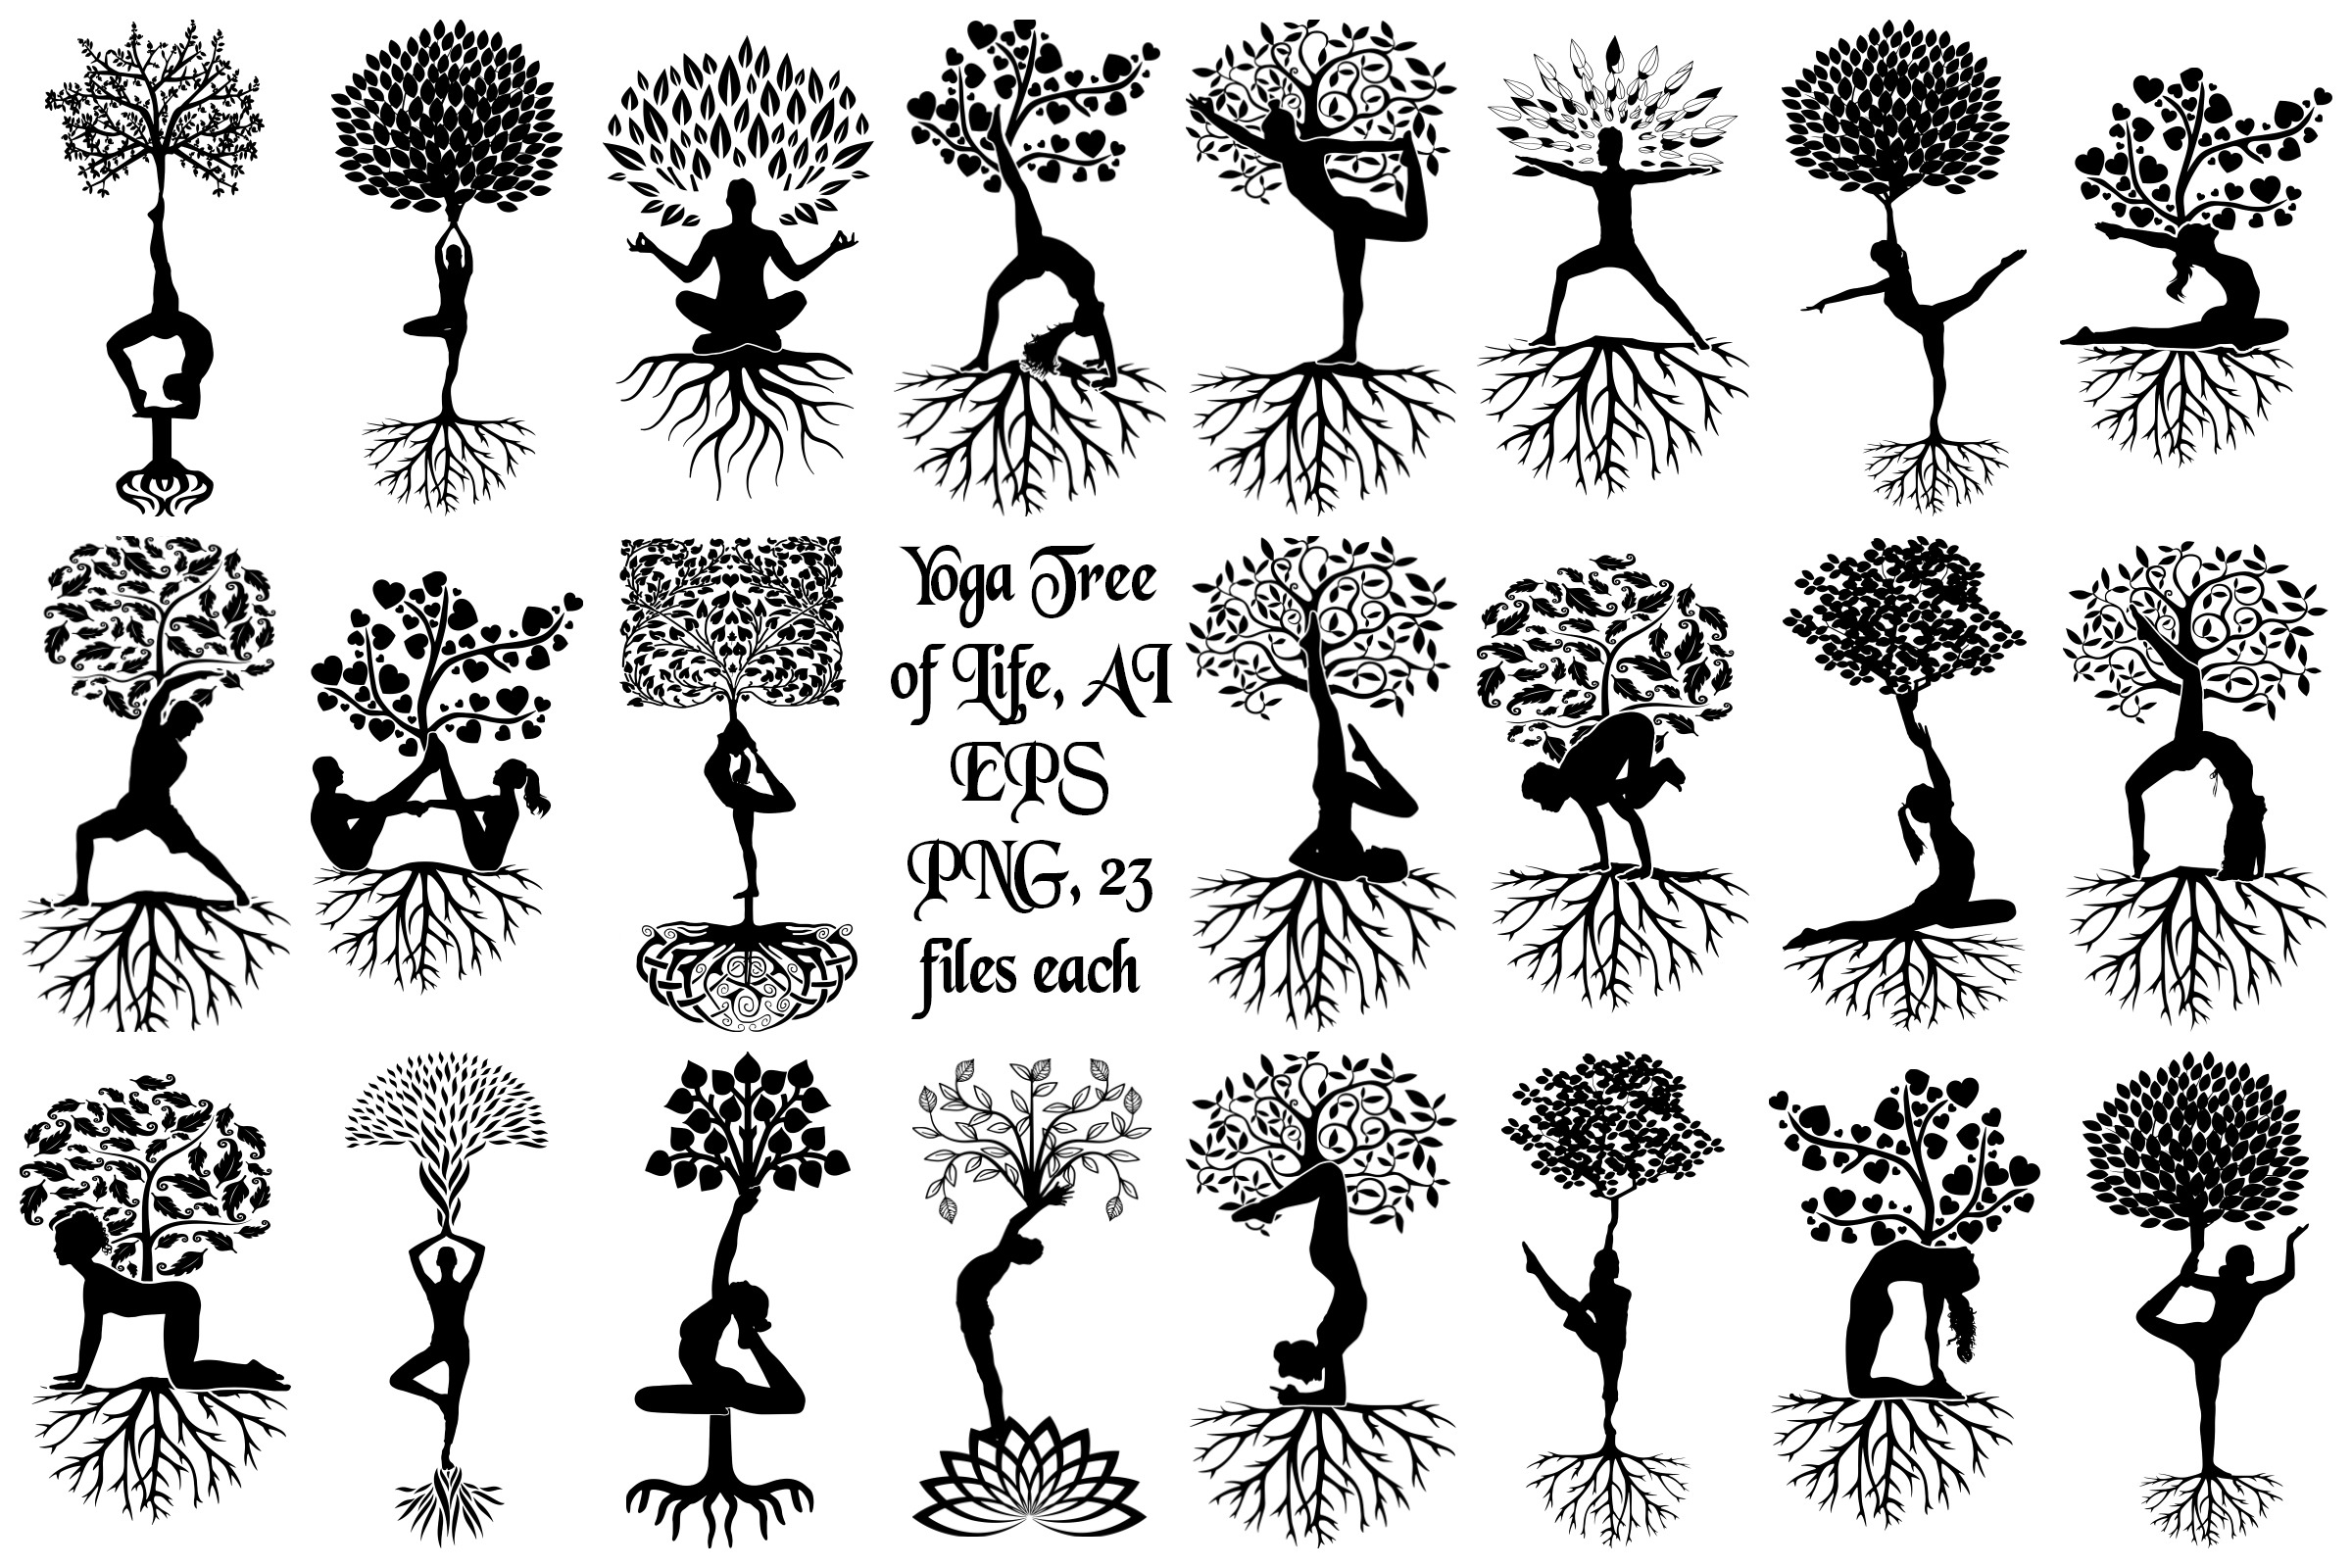 Yoga Tree Silhouettes AI EPS Vector & PNG example image 2